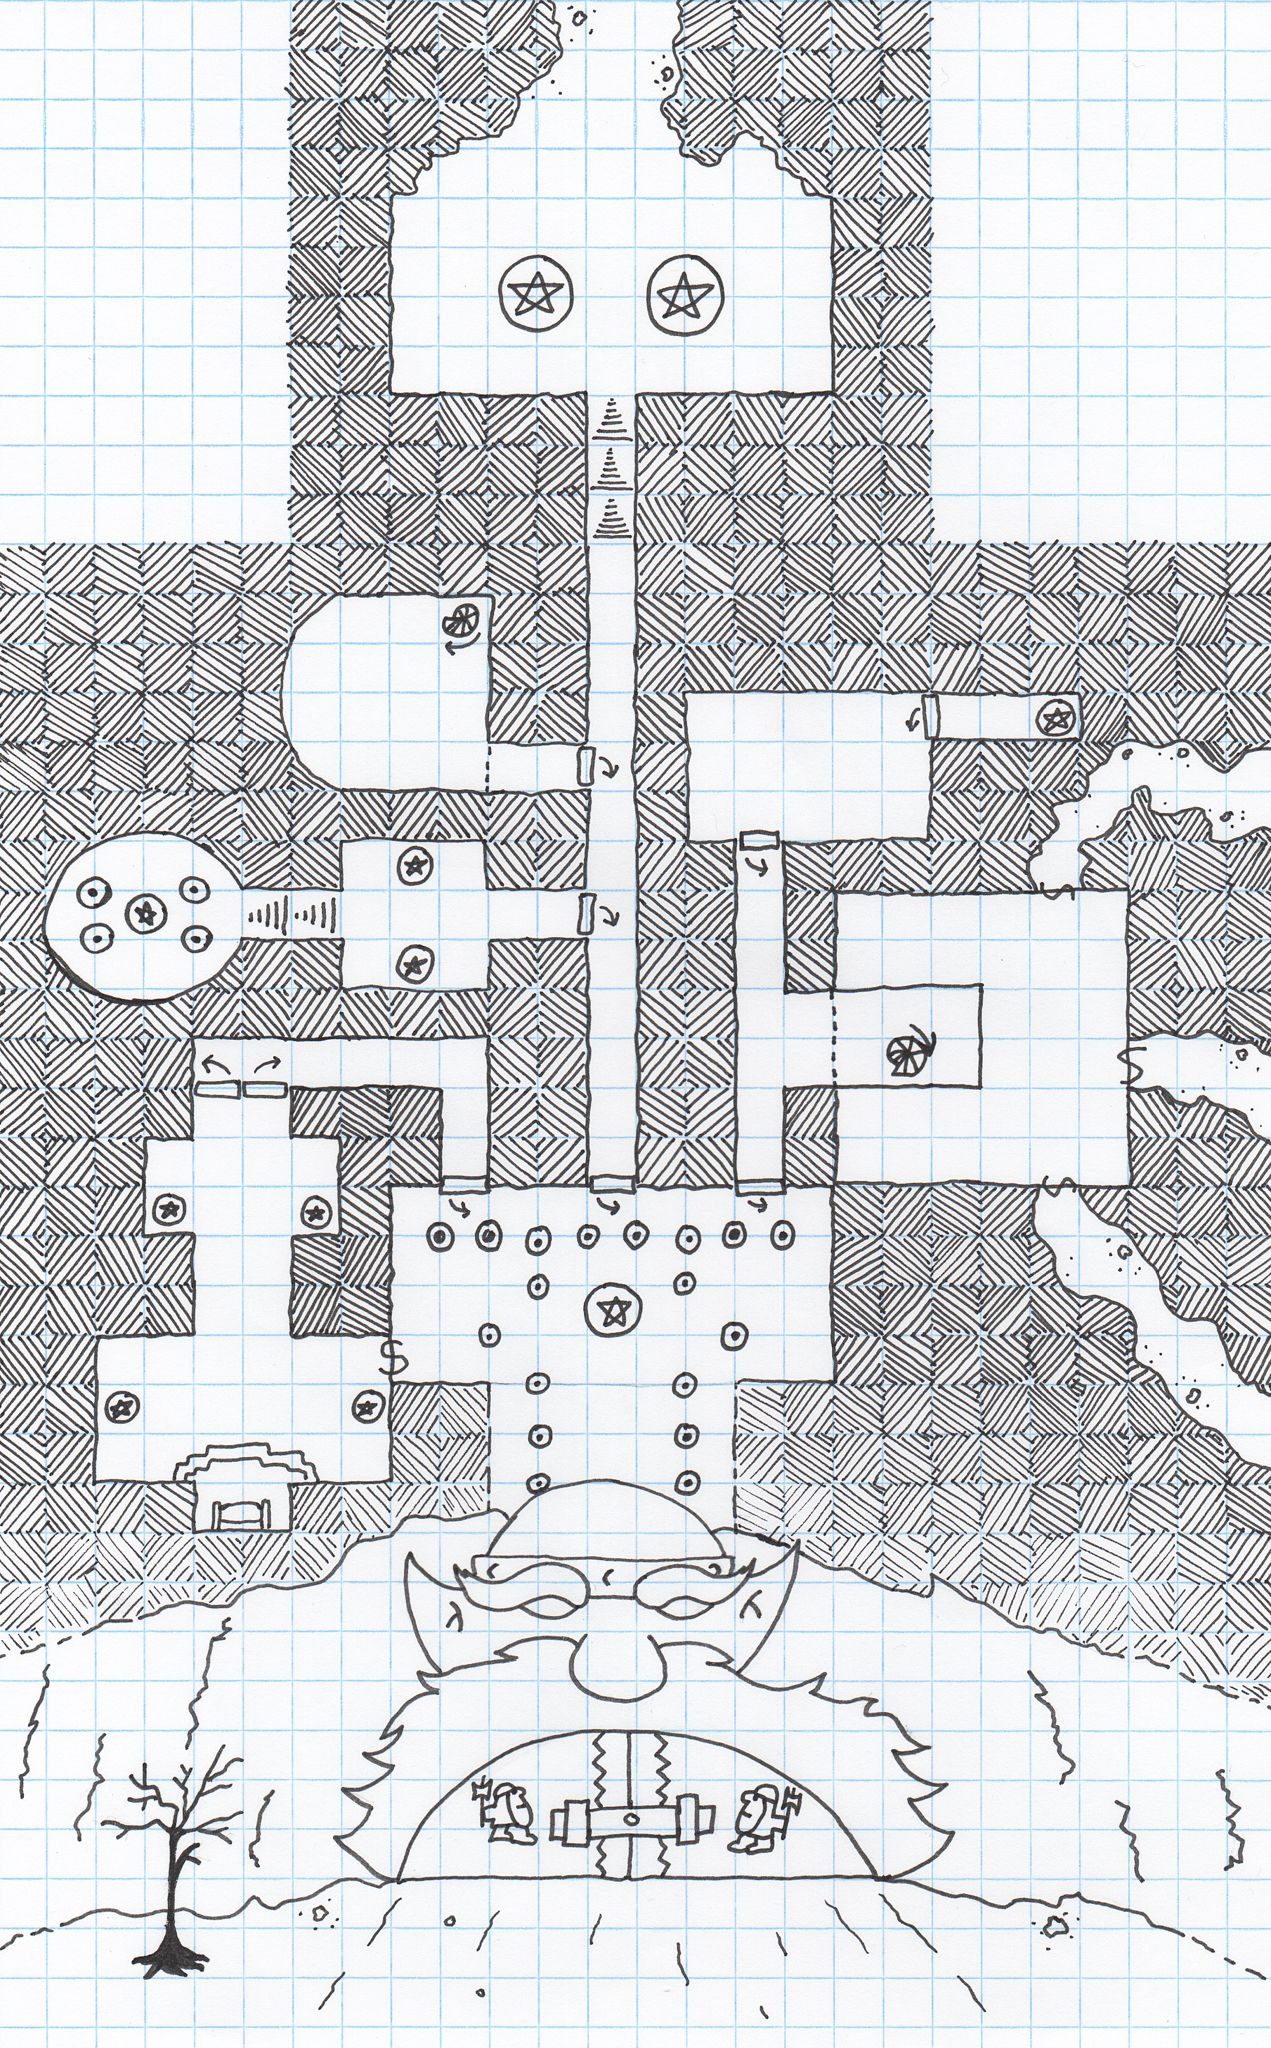 Dwarven Fortress   Dungeon Maps   Fantasy map, Dungeon maps, Map on collection of rulers, collection of books, collection of dirt, collection of magic, collection of work, collection of links, collection of reports, collection of hotels, collection of trees, collection of gems, collection of postage stamps, collection of dinosaurs, collection of fossils, collection of cameras, collection of geronimo, collection of tables, collection of information, collection of data, collection of movies, collection of umbrella,